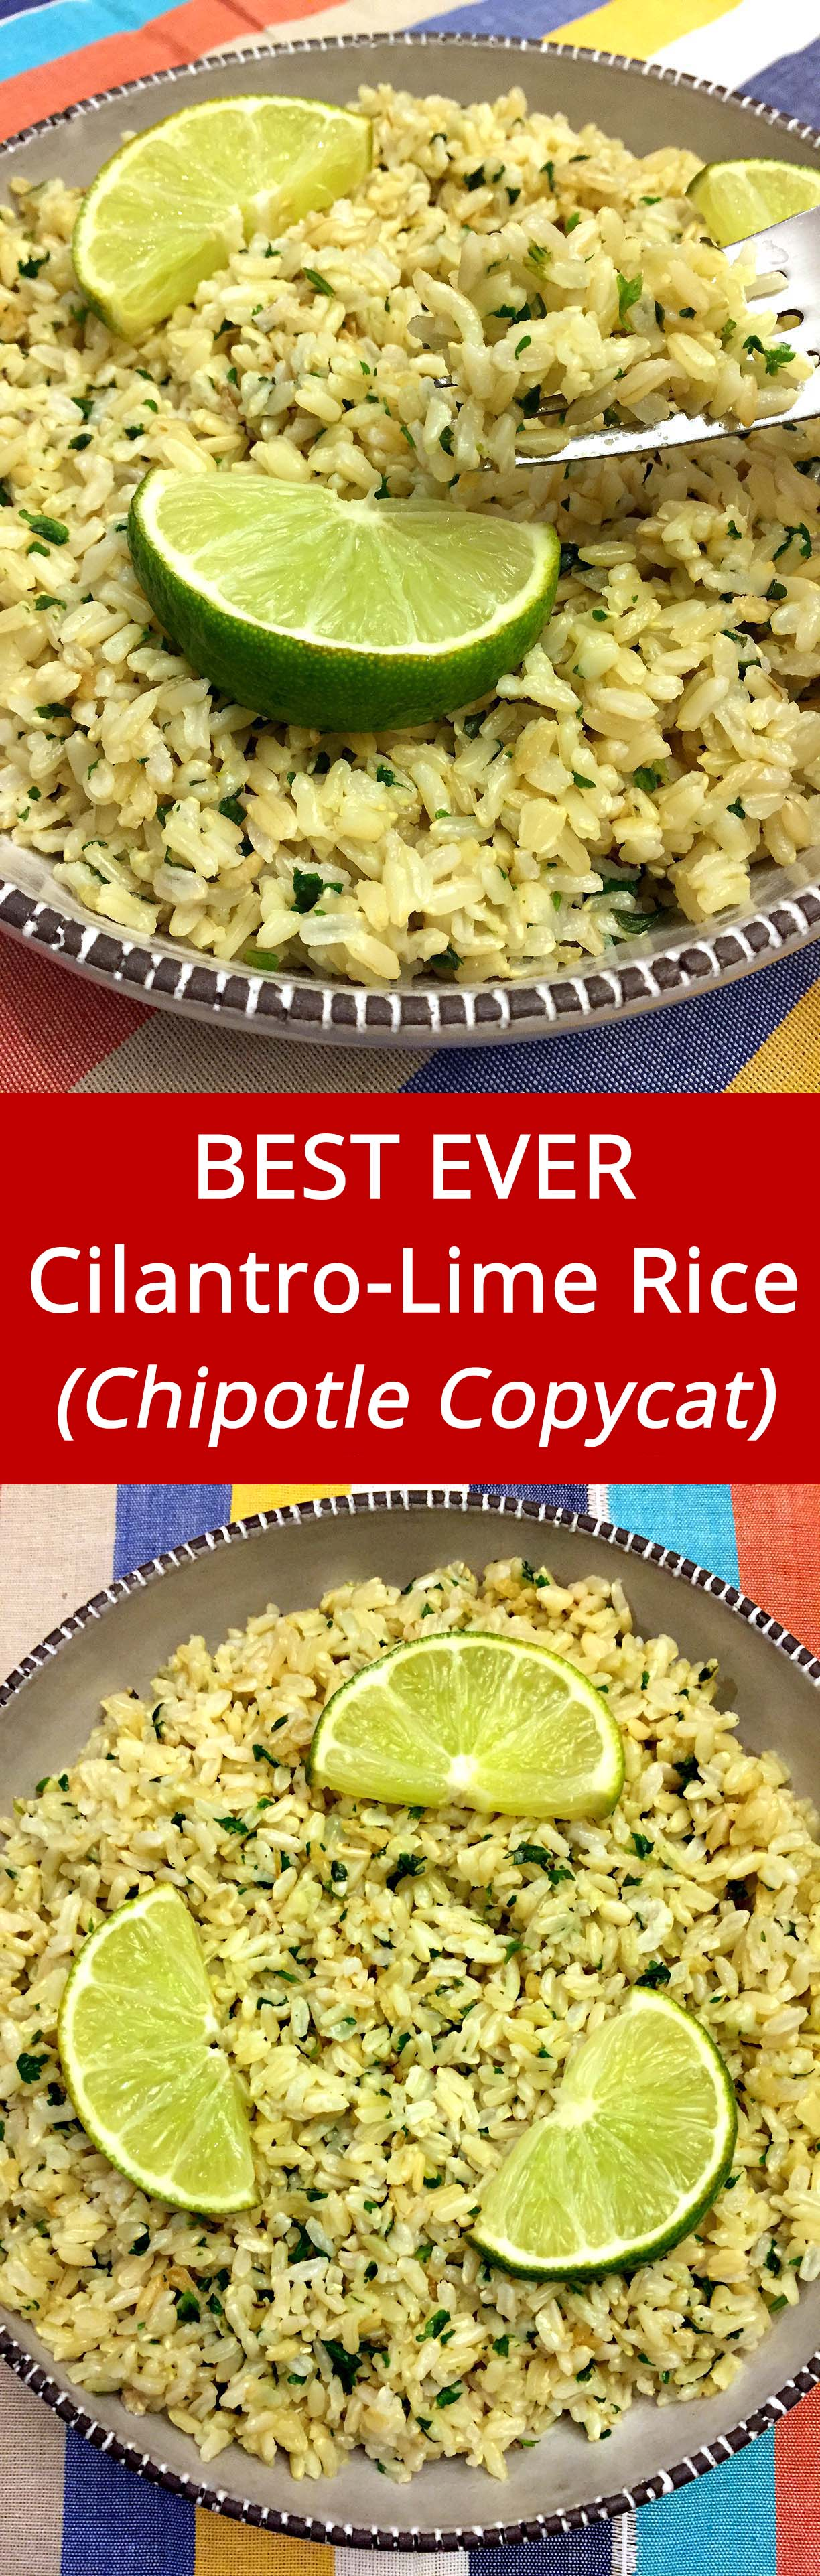 I love Chipotle cilantro-lime rice! This recipe is amazing!